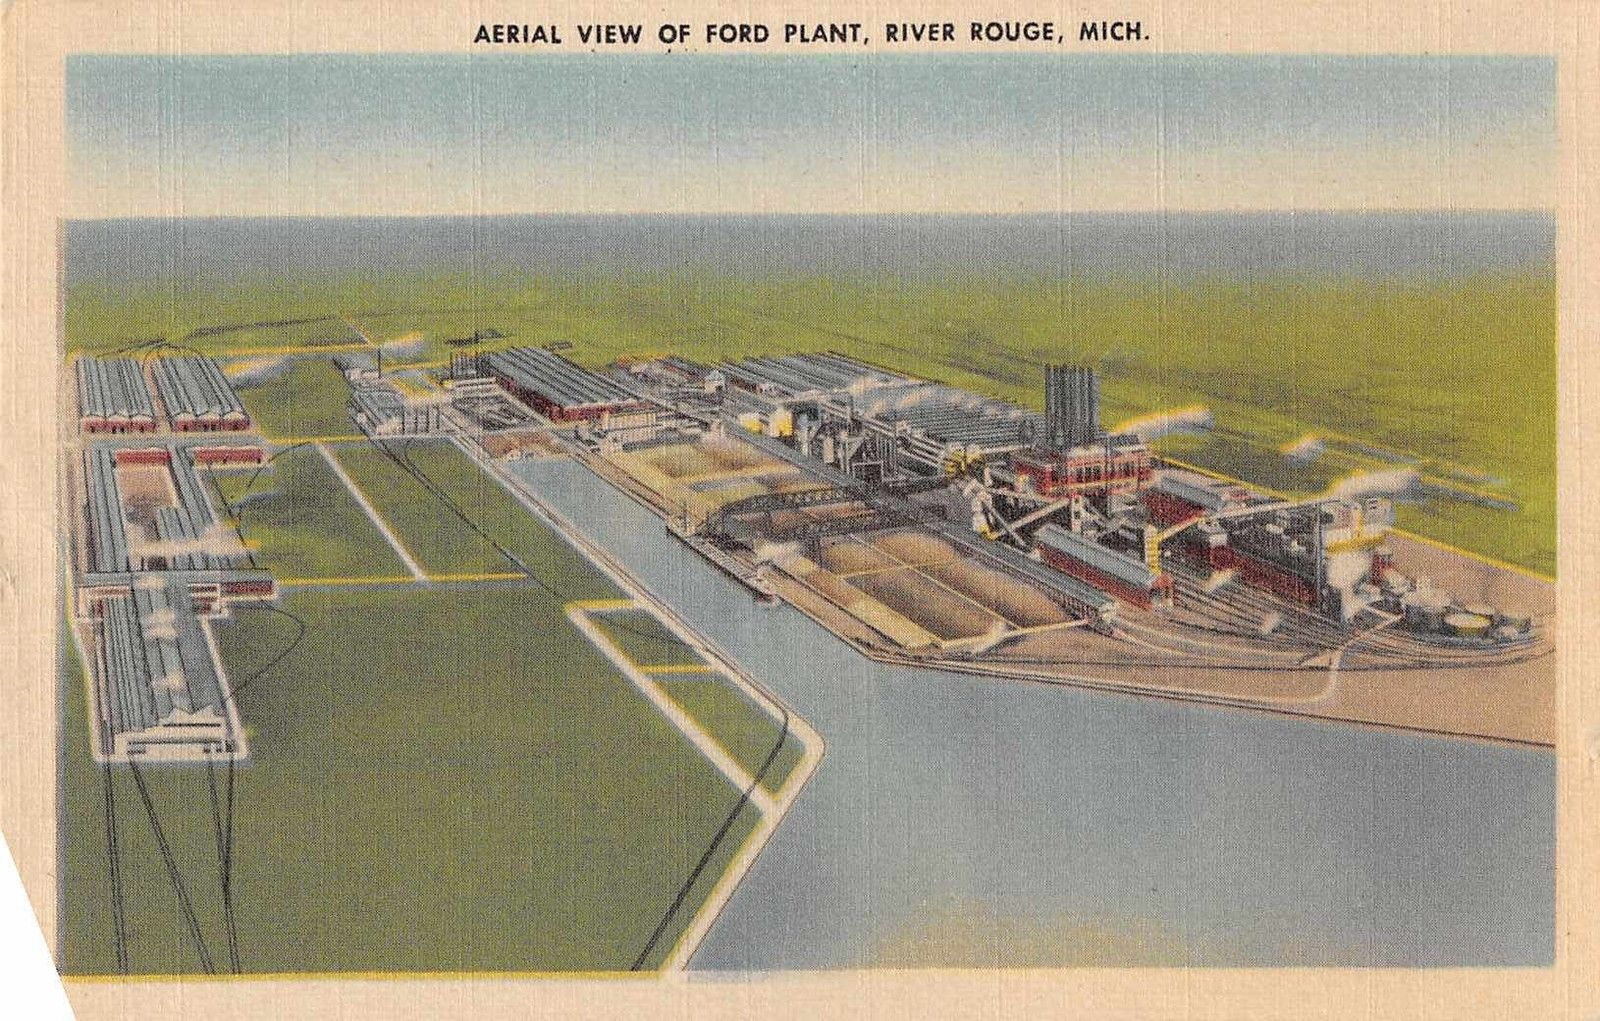 River Rouge Plant >> Aerial View of Ford Plant, River Rouge, Michigan Antique Postcard (T3257) - Mary L. Martin Ltd ...